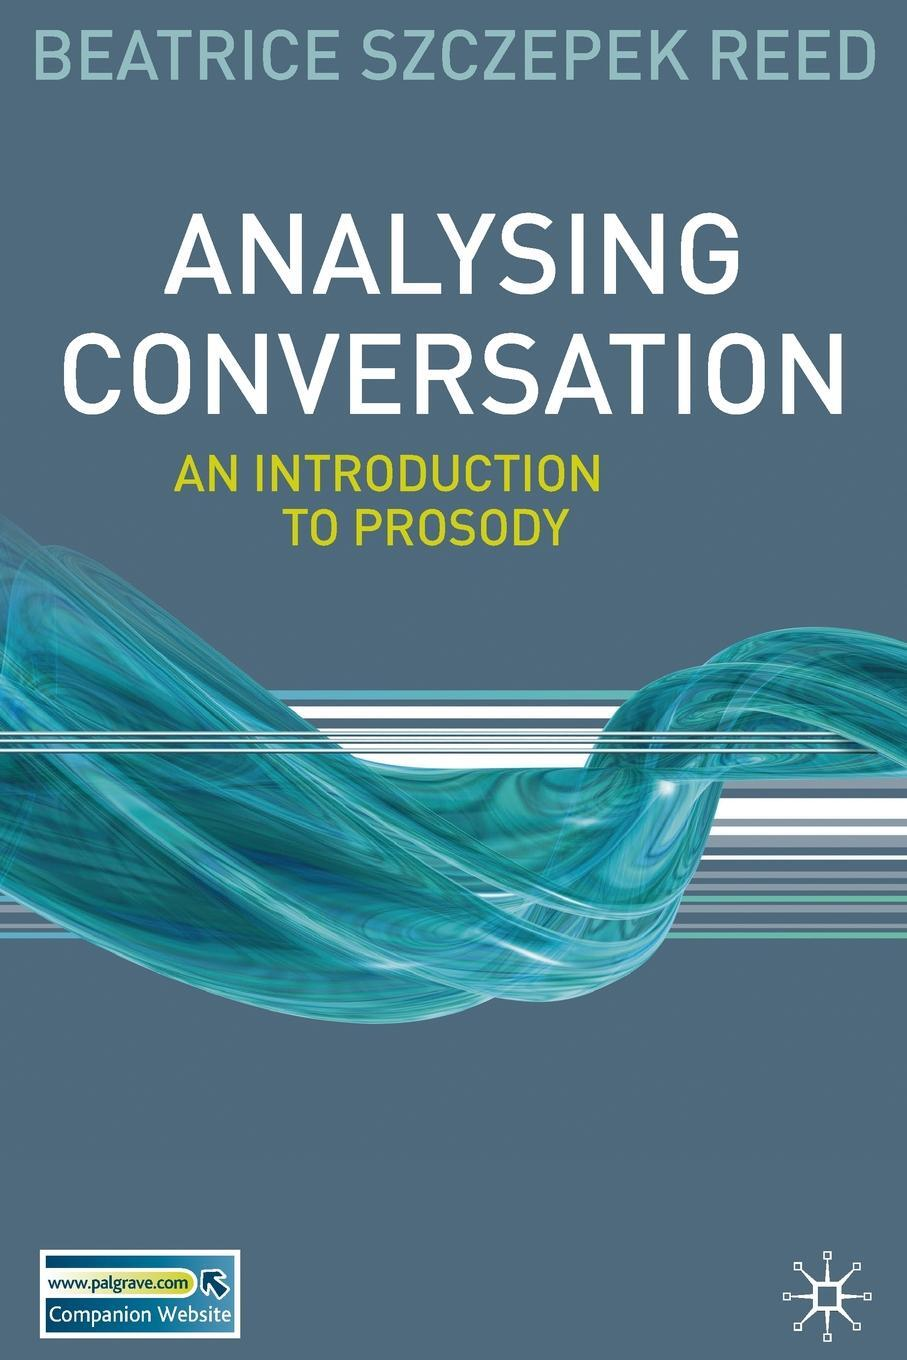 Analysing Conversation. An Introduction to Prosody. Beatrice Szczepek Reed